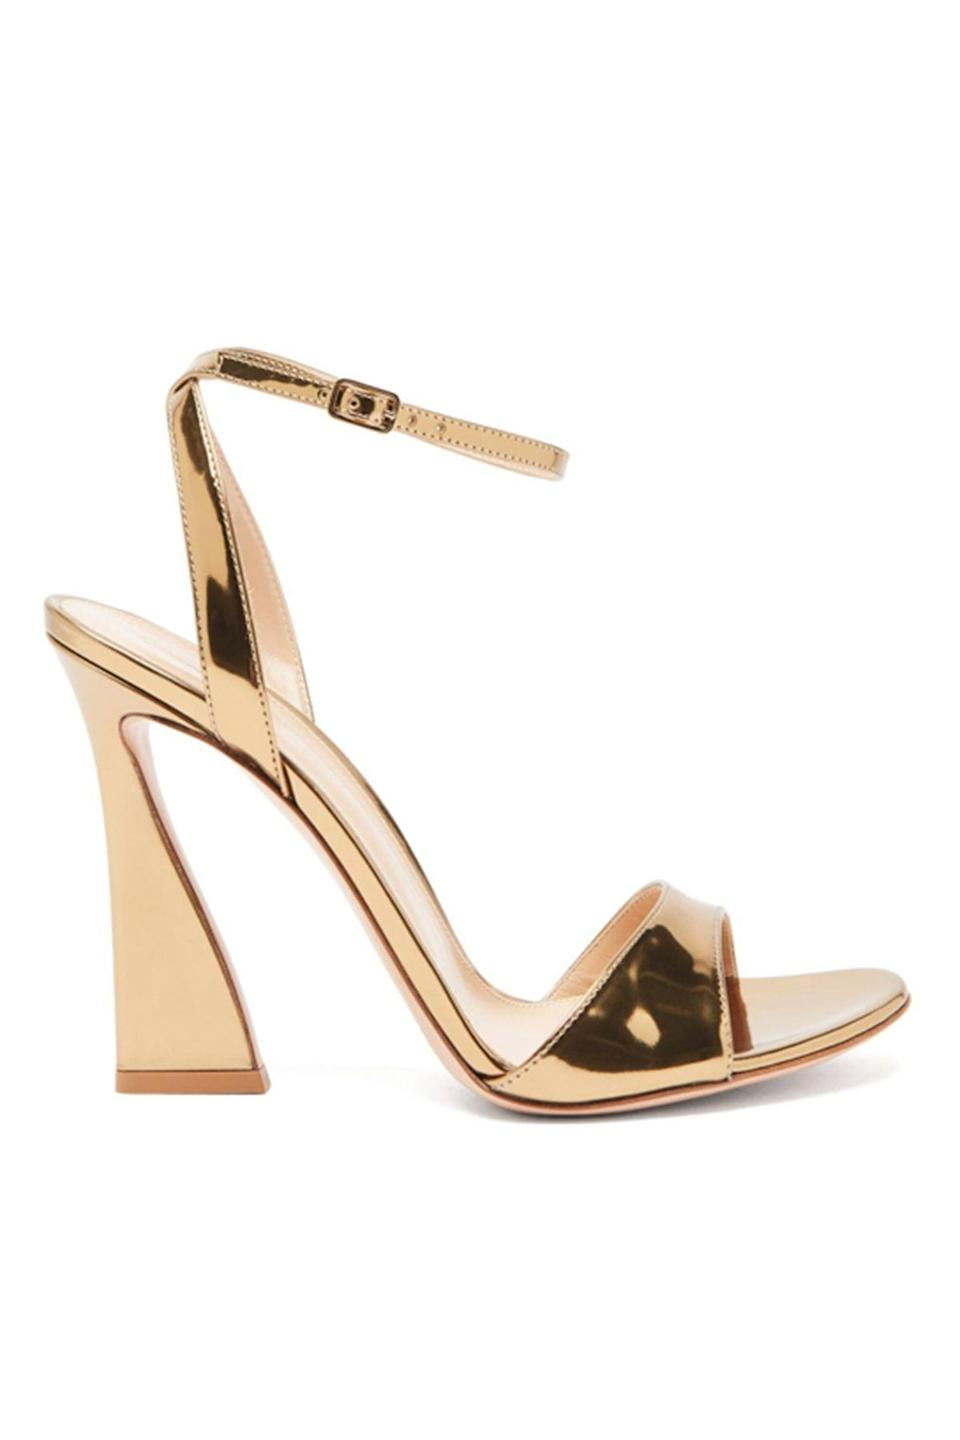 """<p><strong>Gianvito Rossi</strong></p><p>matchesfashion.com</p><p><strong>$845.00</strong></p><p><a href=""""https://go.redirectingat.com?id=74968X1596630&url=https%3A%2F%2Fwww.matchesfashion.com%2Fus%2Fproducts%2F1423629&sref=https%3A%2F%2Fwww.townandcountrymag.com%2Fstyle%2Ffashion-trends%2Fg36544376%2Fbest-metallic-accessories%2F"""" rel=""""nofollow noopener"""" target=""""_blank"""" data-ylk=""""slk:Shop Now"""" class=""""link rapid-noclick-resp"""">Shop Now</a></p><p>Hitting up the first summer party of the year? These 70s-esque stilettos will put you in a mood fit for Studio 54. </p>"""